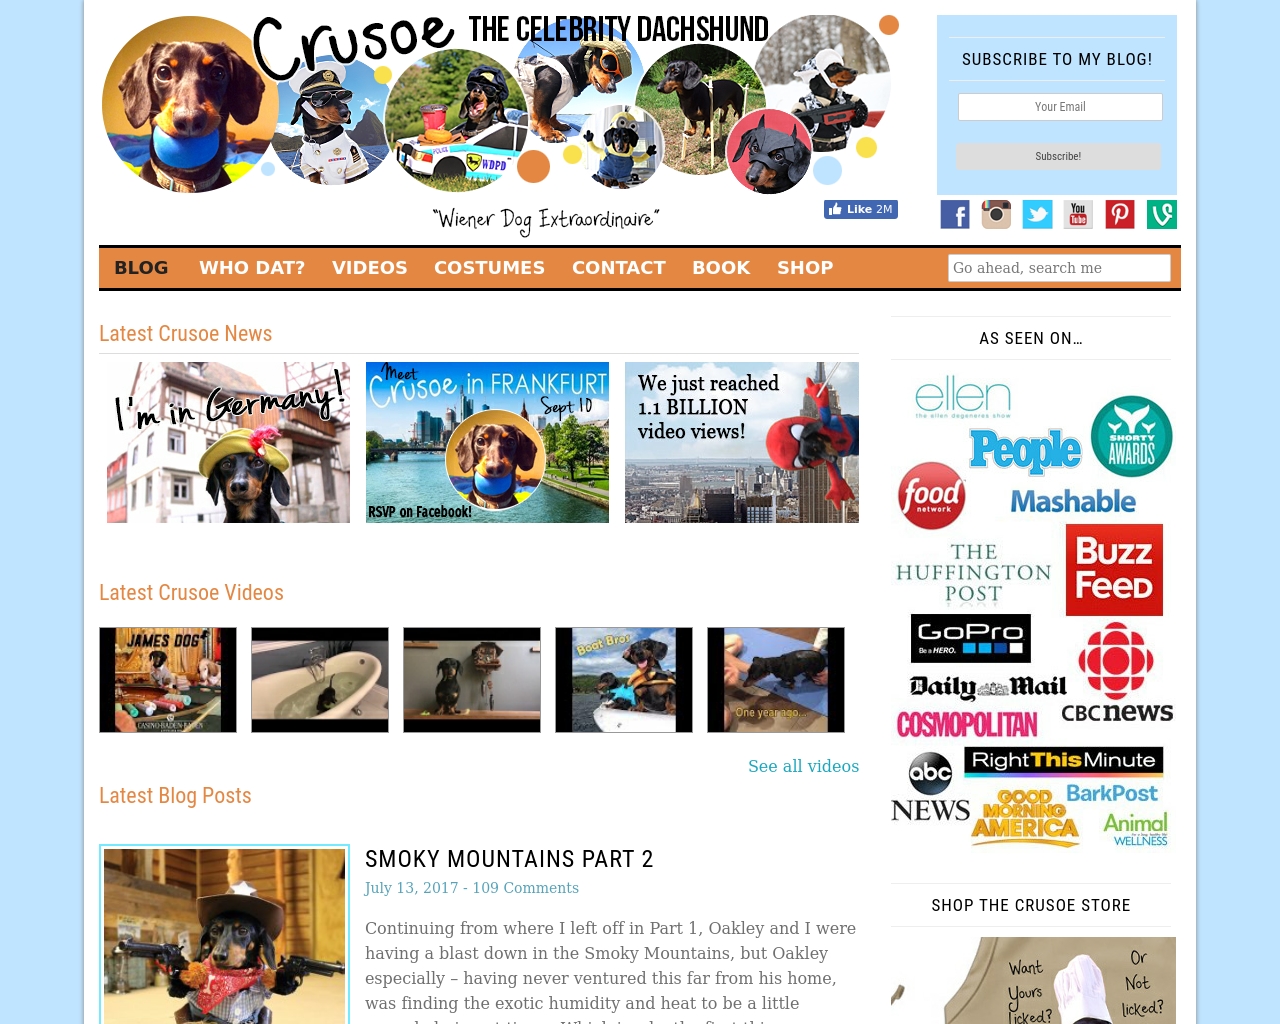 Crusoe-The-Celebrity-Dachshund-Advertising-Reviews-Pricing